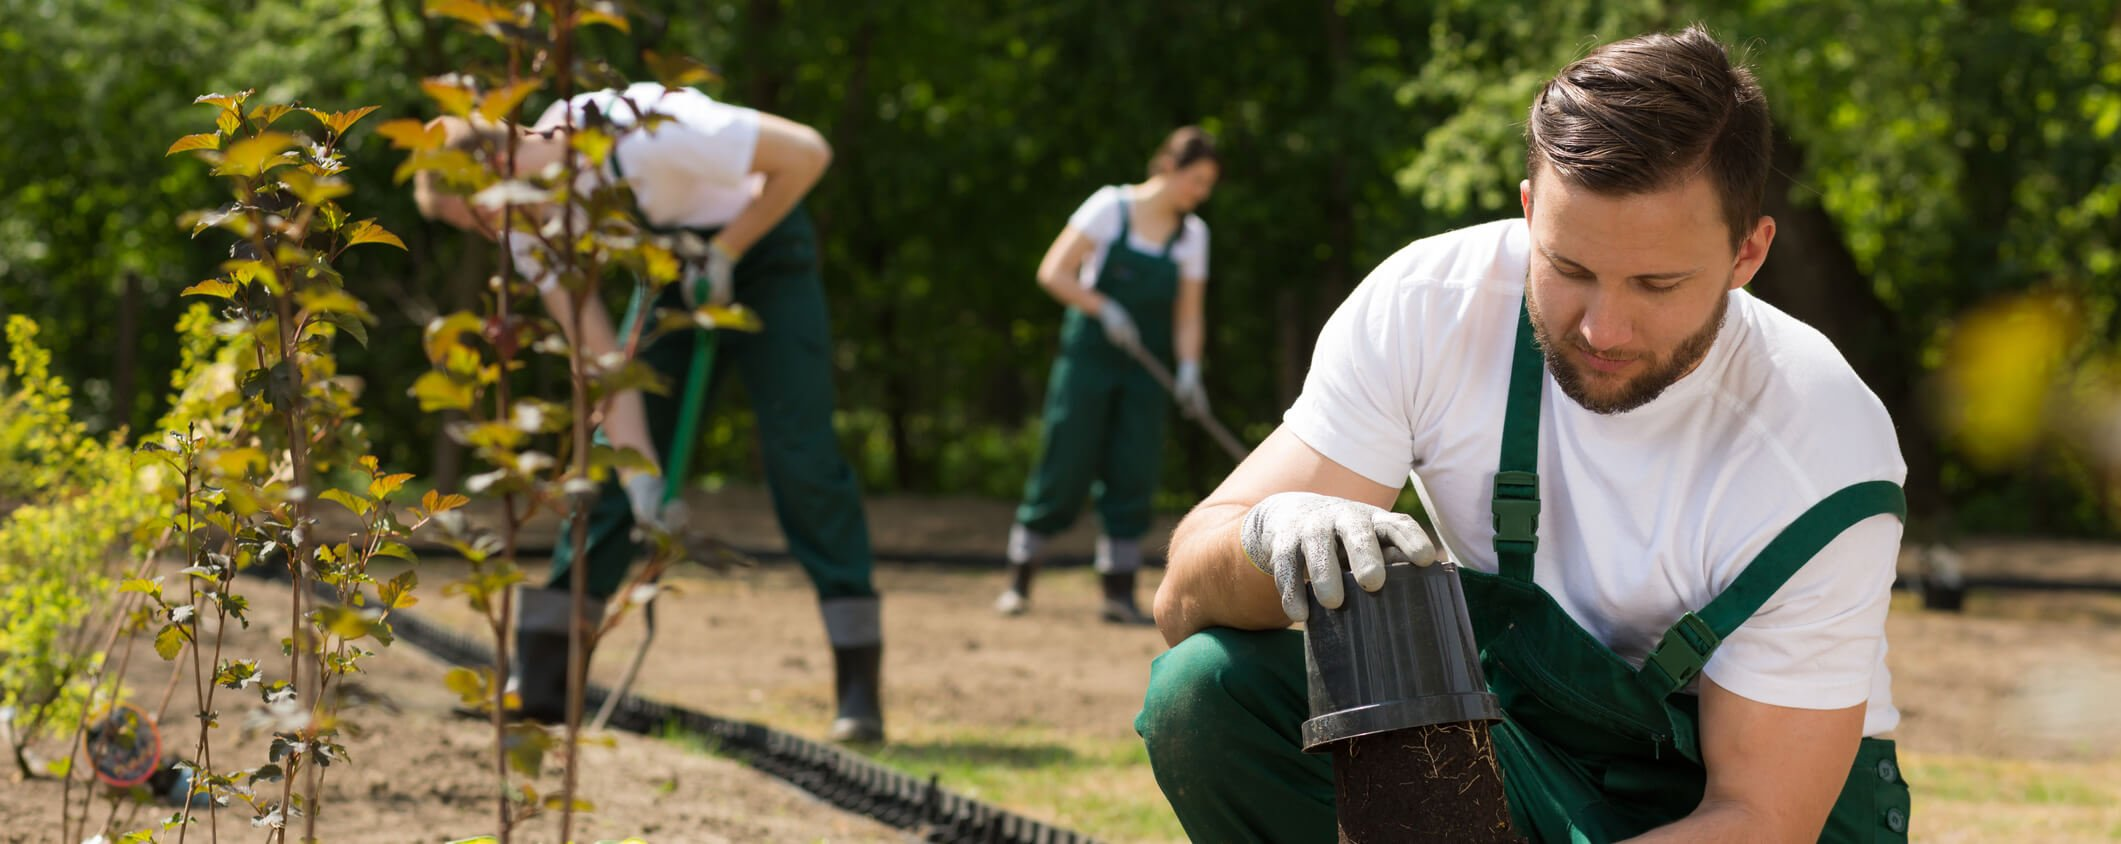 Key reasons to use field management software for open spaces management